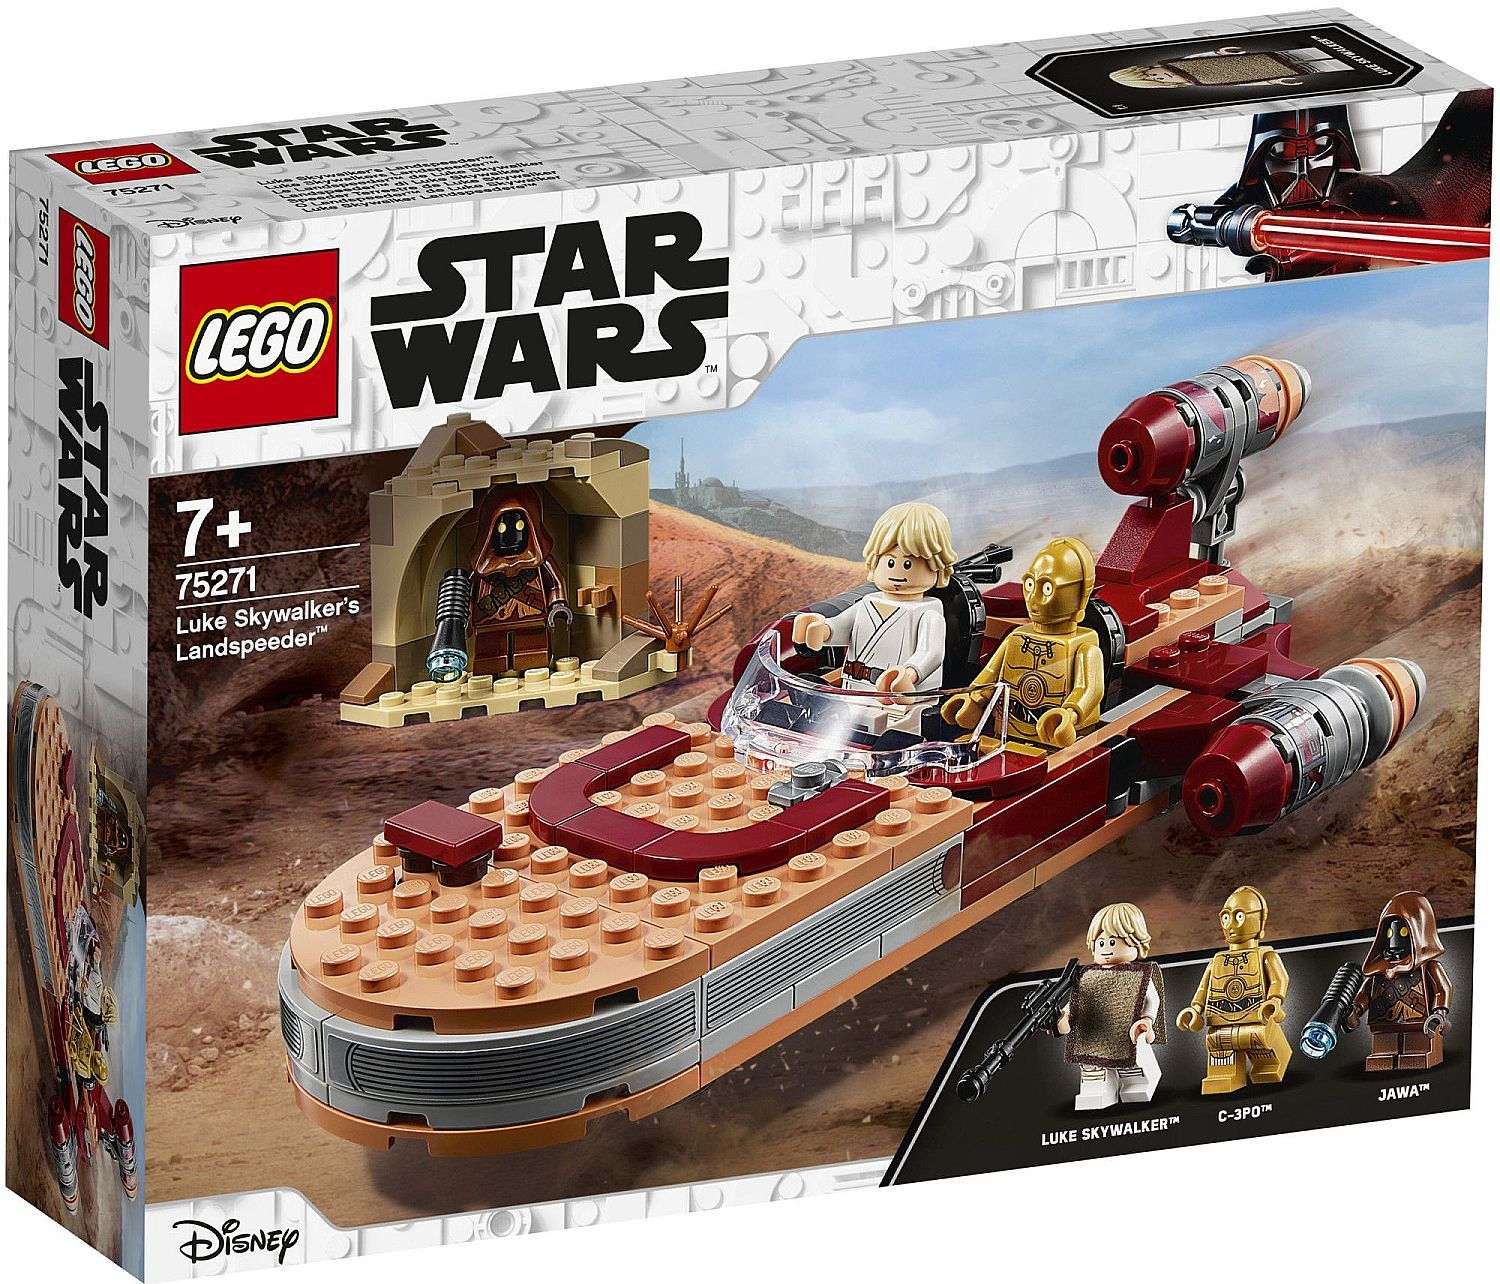 Конструктор Lego Star Wars - Luke Skywalker's Landspeeder (75271) - 1